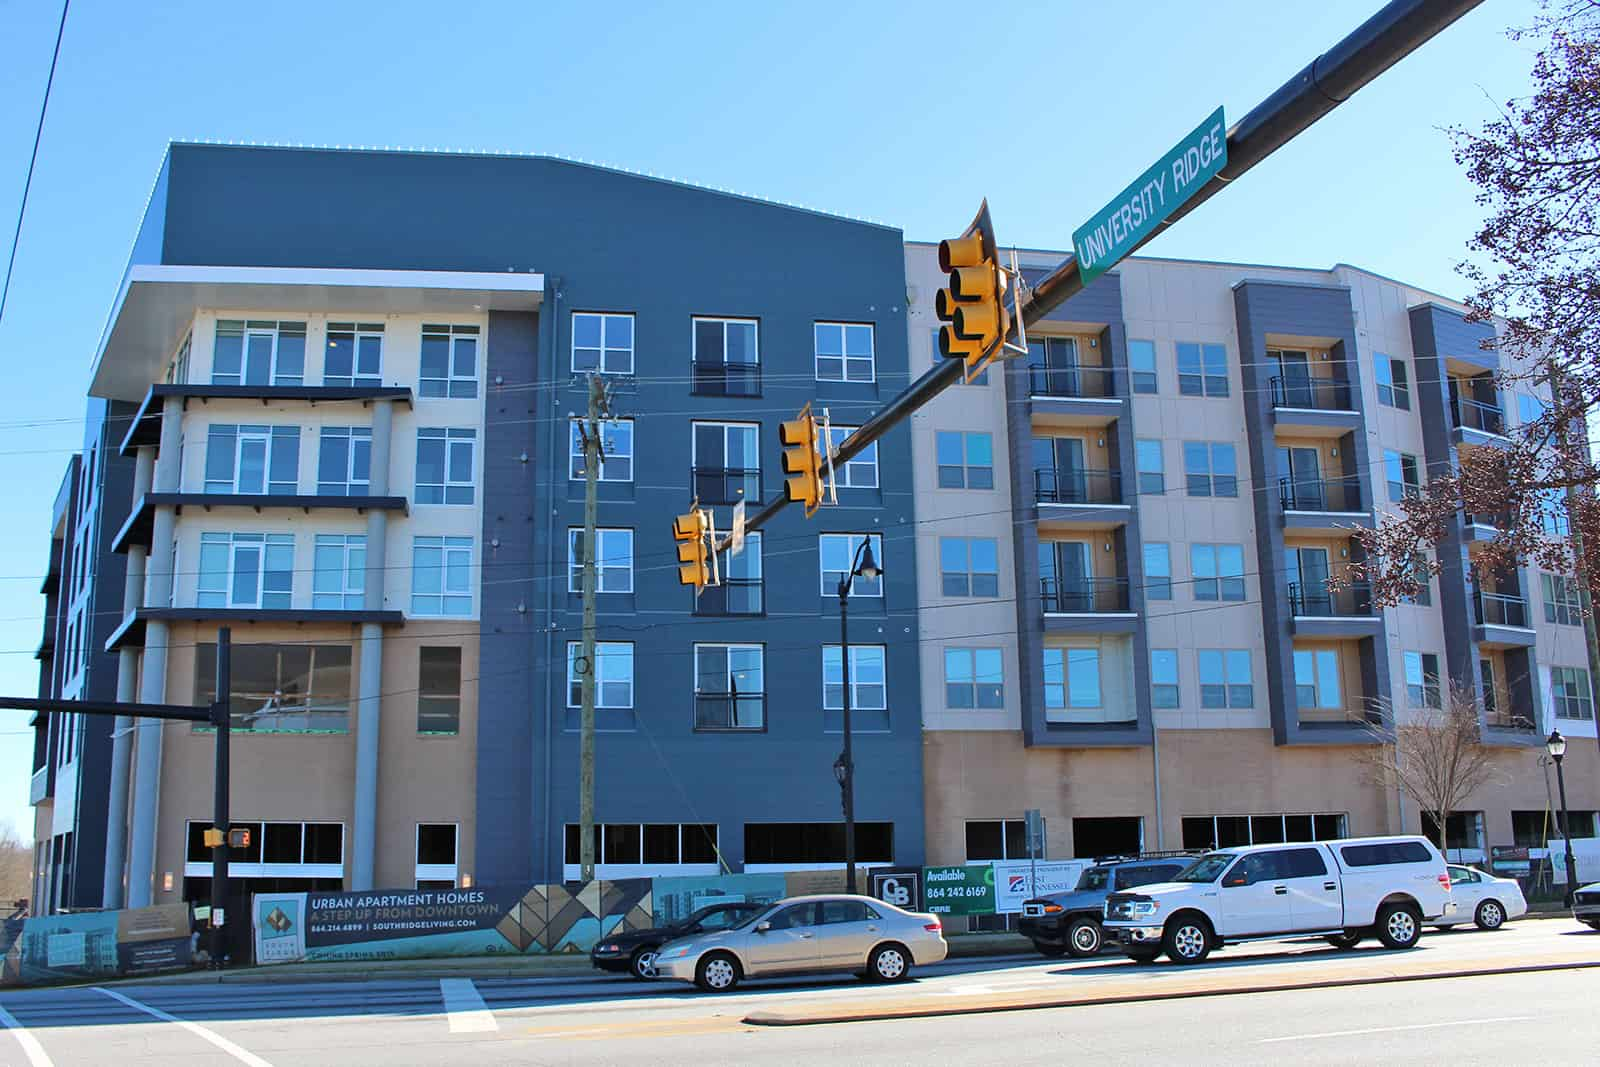 south ridge greenville on the rise